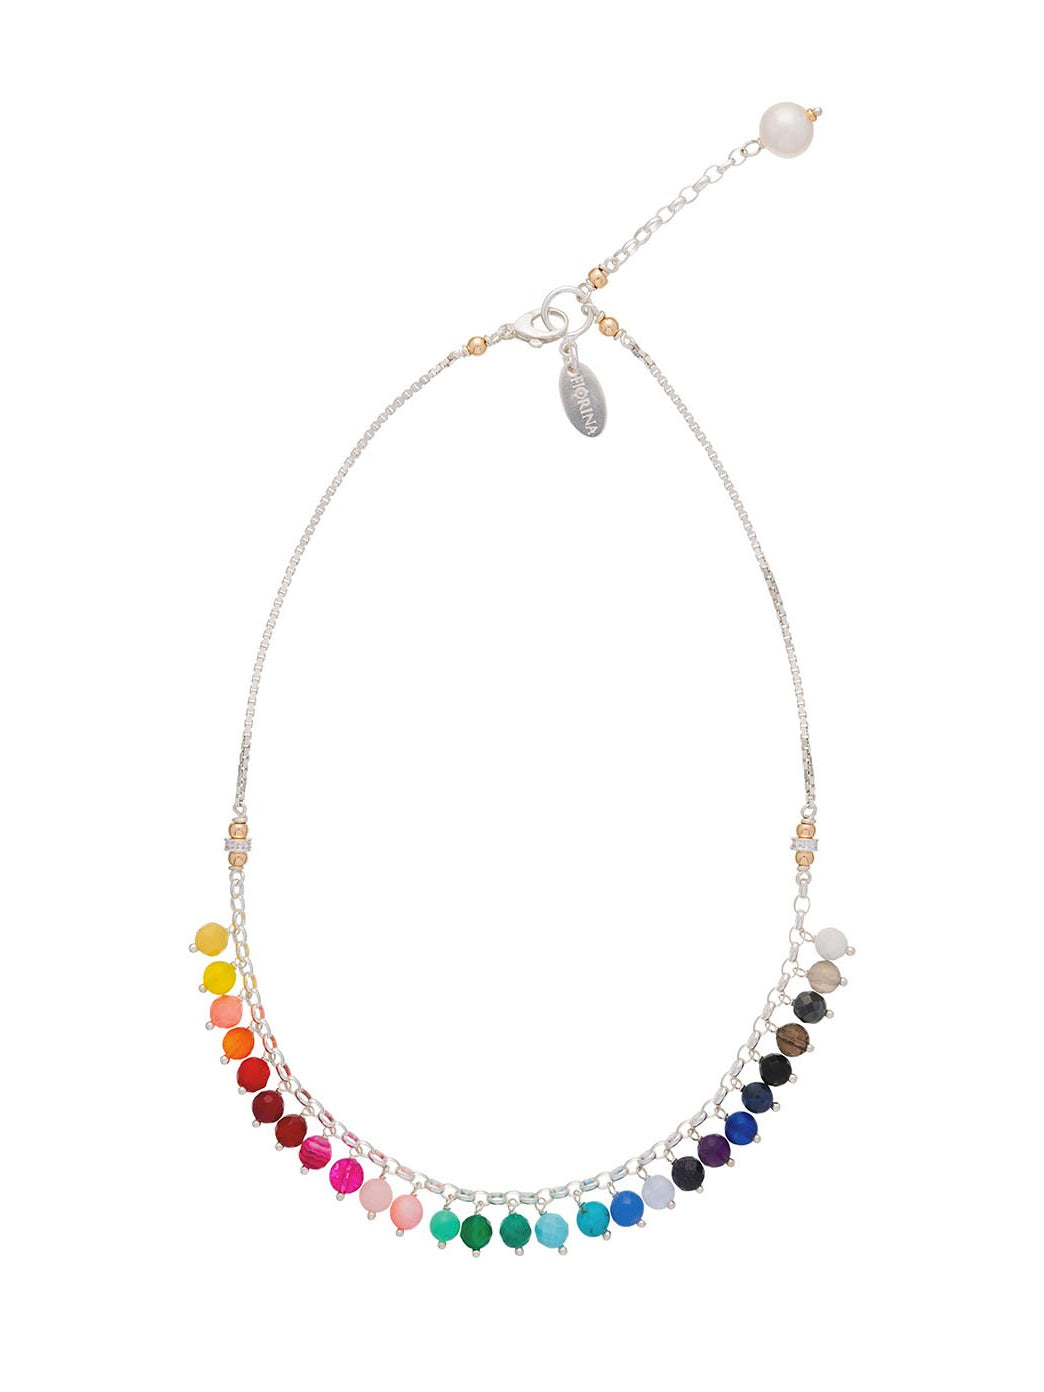 Fiorina Jewellery Raindrop Necklace Chakra